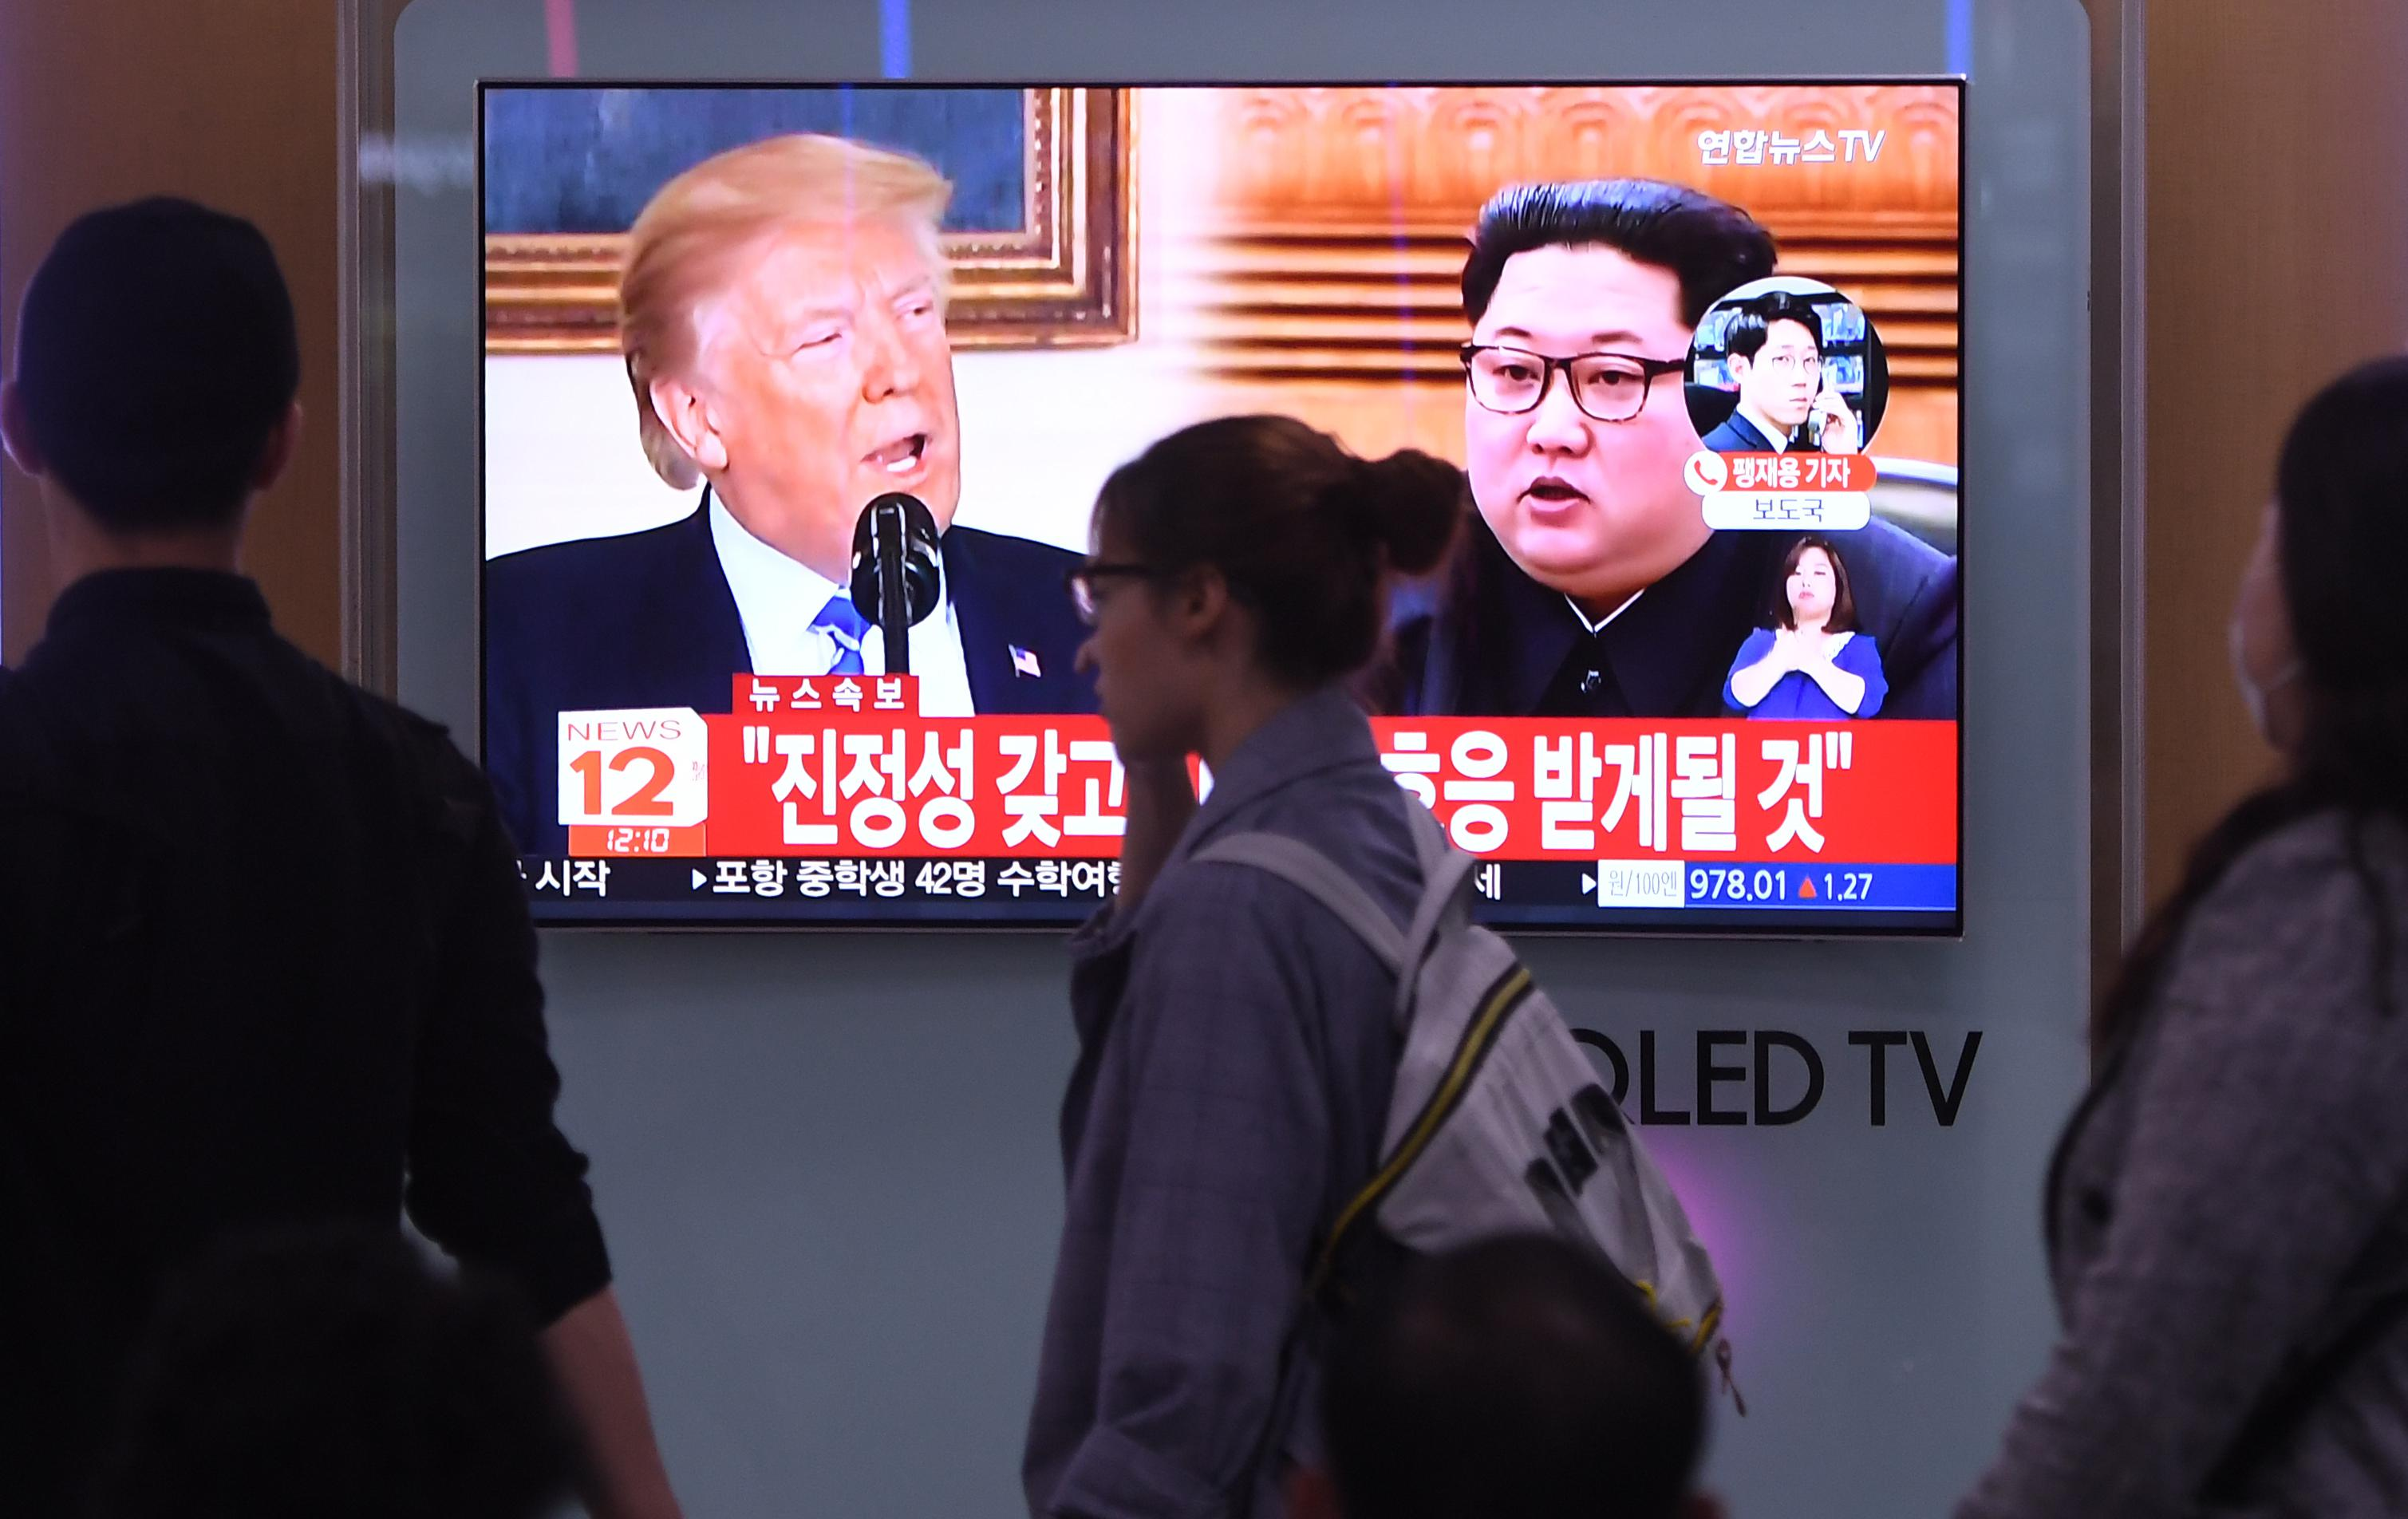 People walk past a television news screen showing North Korean leader Kim Jong Un (R) and US President Donald Trump (L) at a railway station in Seoul on May 16, 2018. - North Korea threatened on May 16, to cancel the forthcoming summit between leader Kim Jong Un and President Donald Trump if Washington seeks to push Pyongyang into unilaterally giving up its nuclear arsenal. (Photo by Jung Yeon-je / AFP)        (Photo credit should read JUNG YEON-JE/AFP/Getty Images)